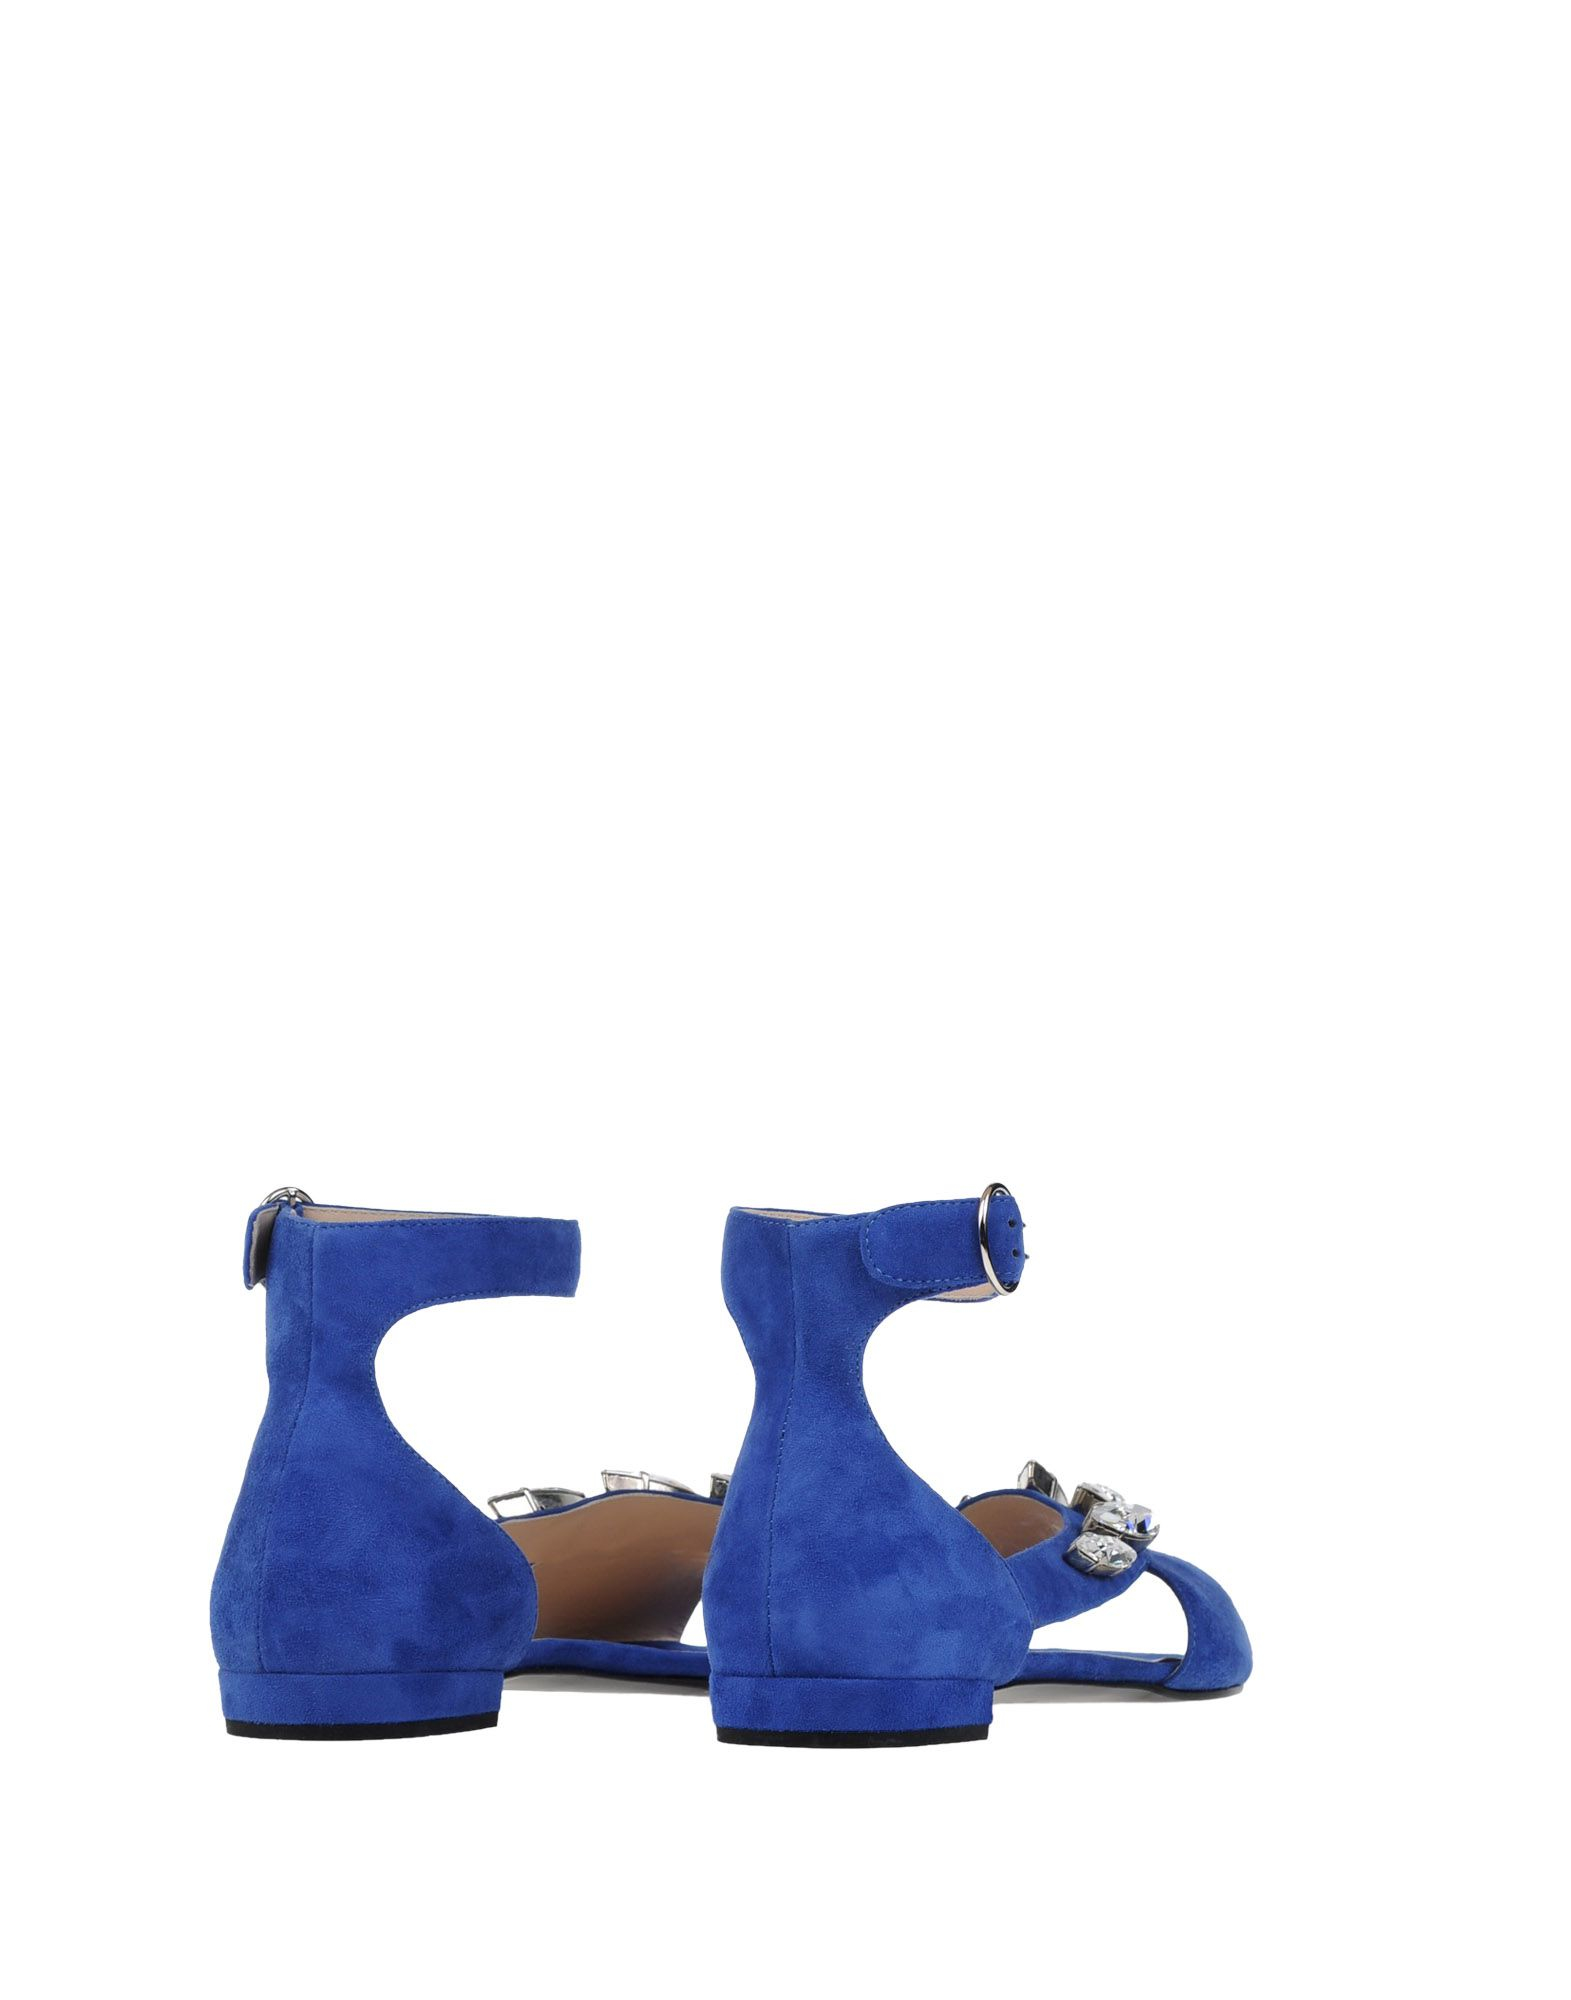 prada handbags sale - Prada Sandals in Blue | Lyst